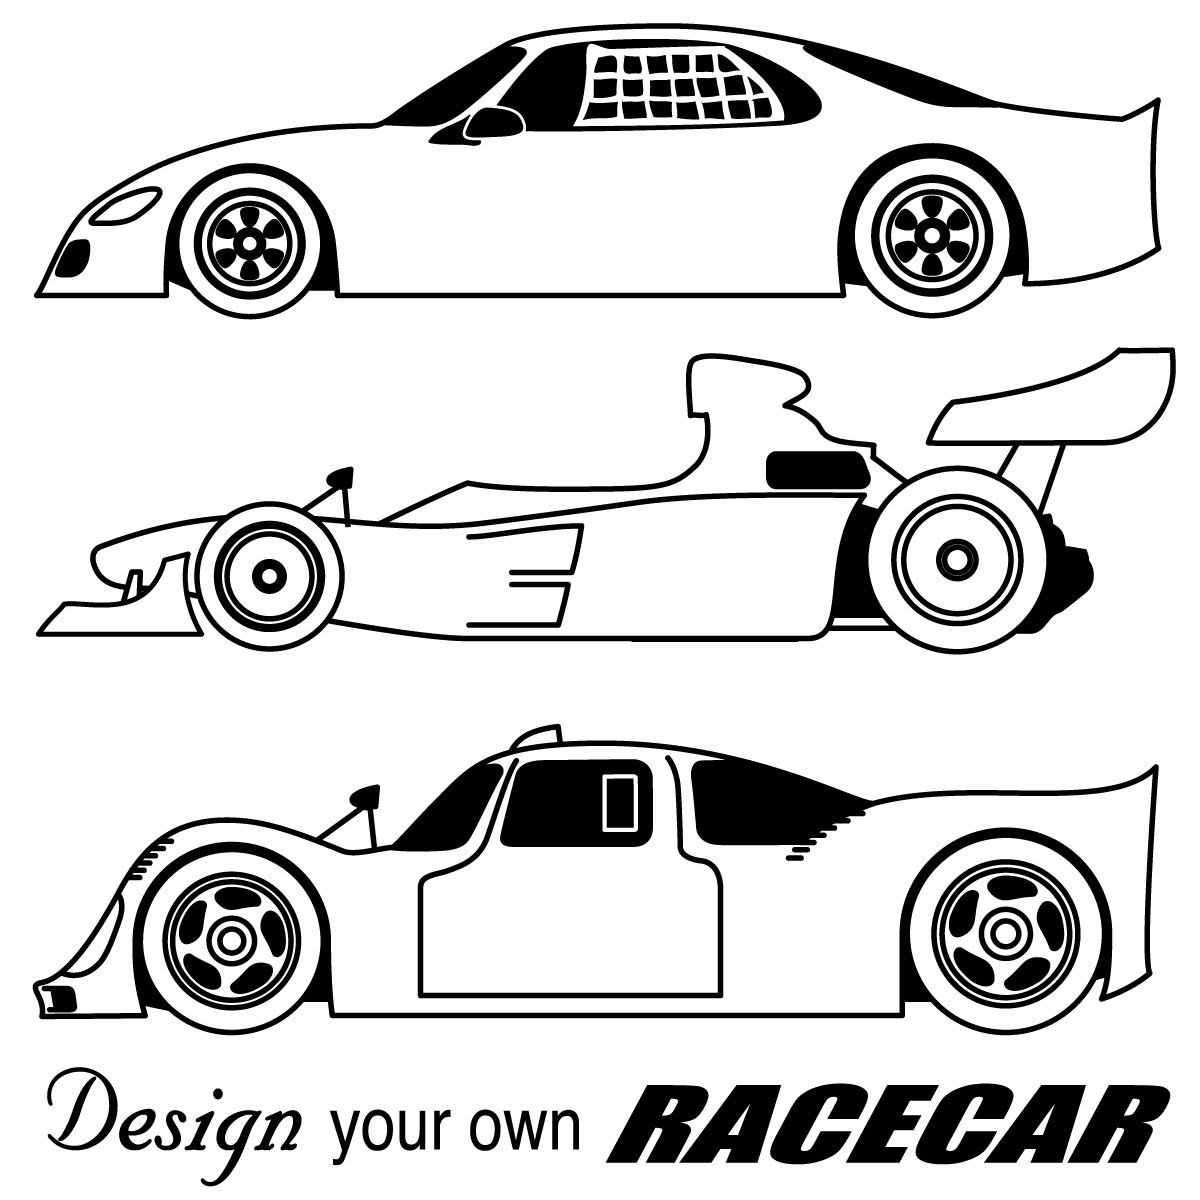 race cars coloring pages free large images coloring pages pinterest pinewood derby kids patterns and sewing projects